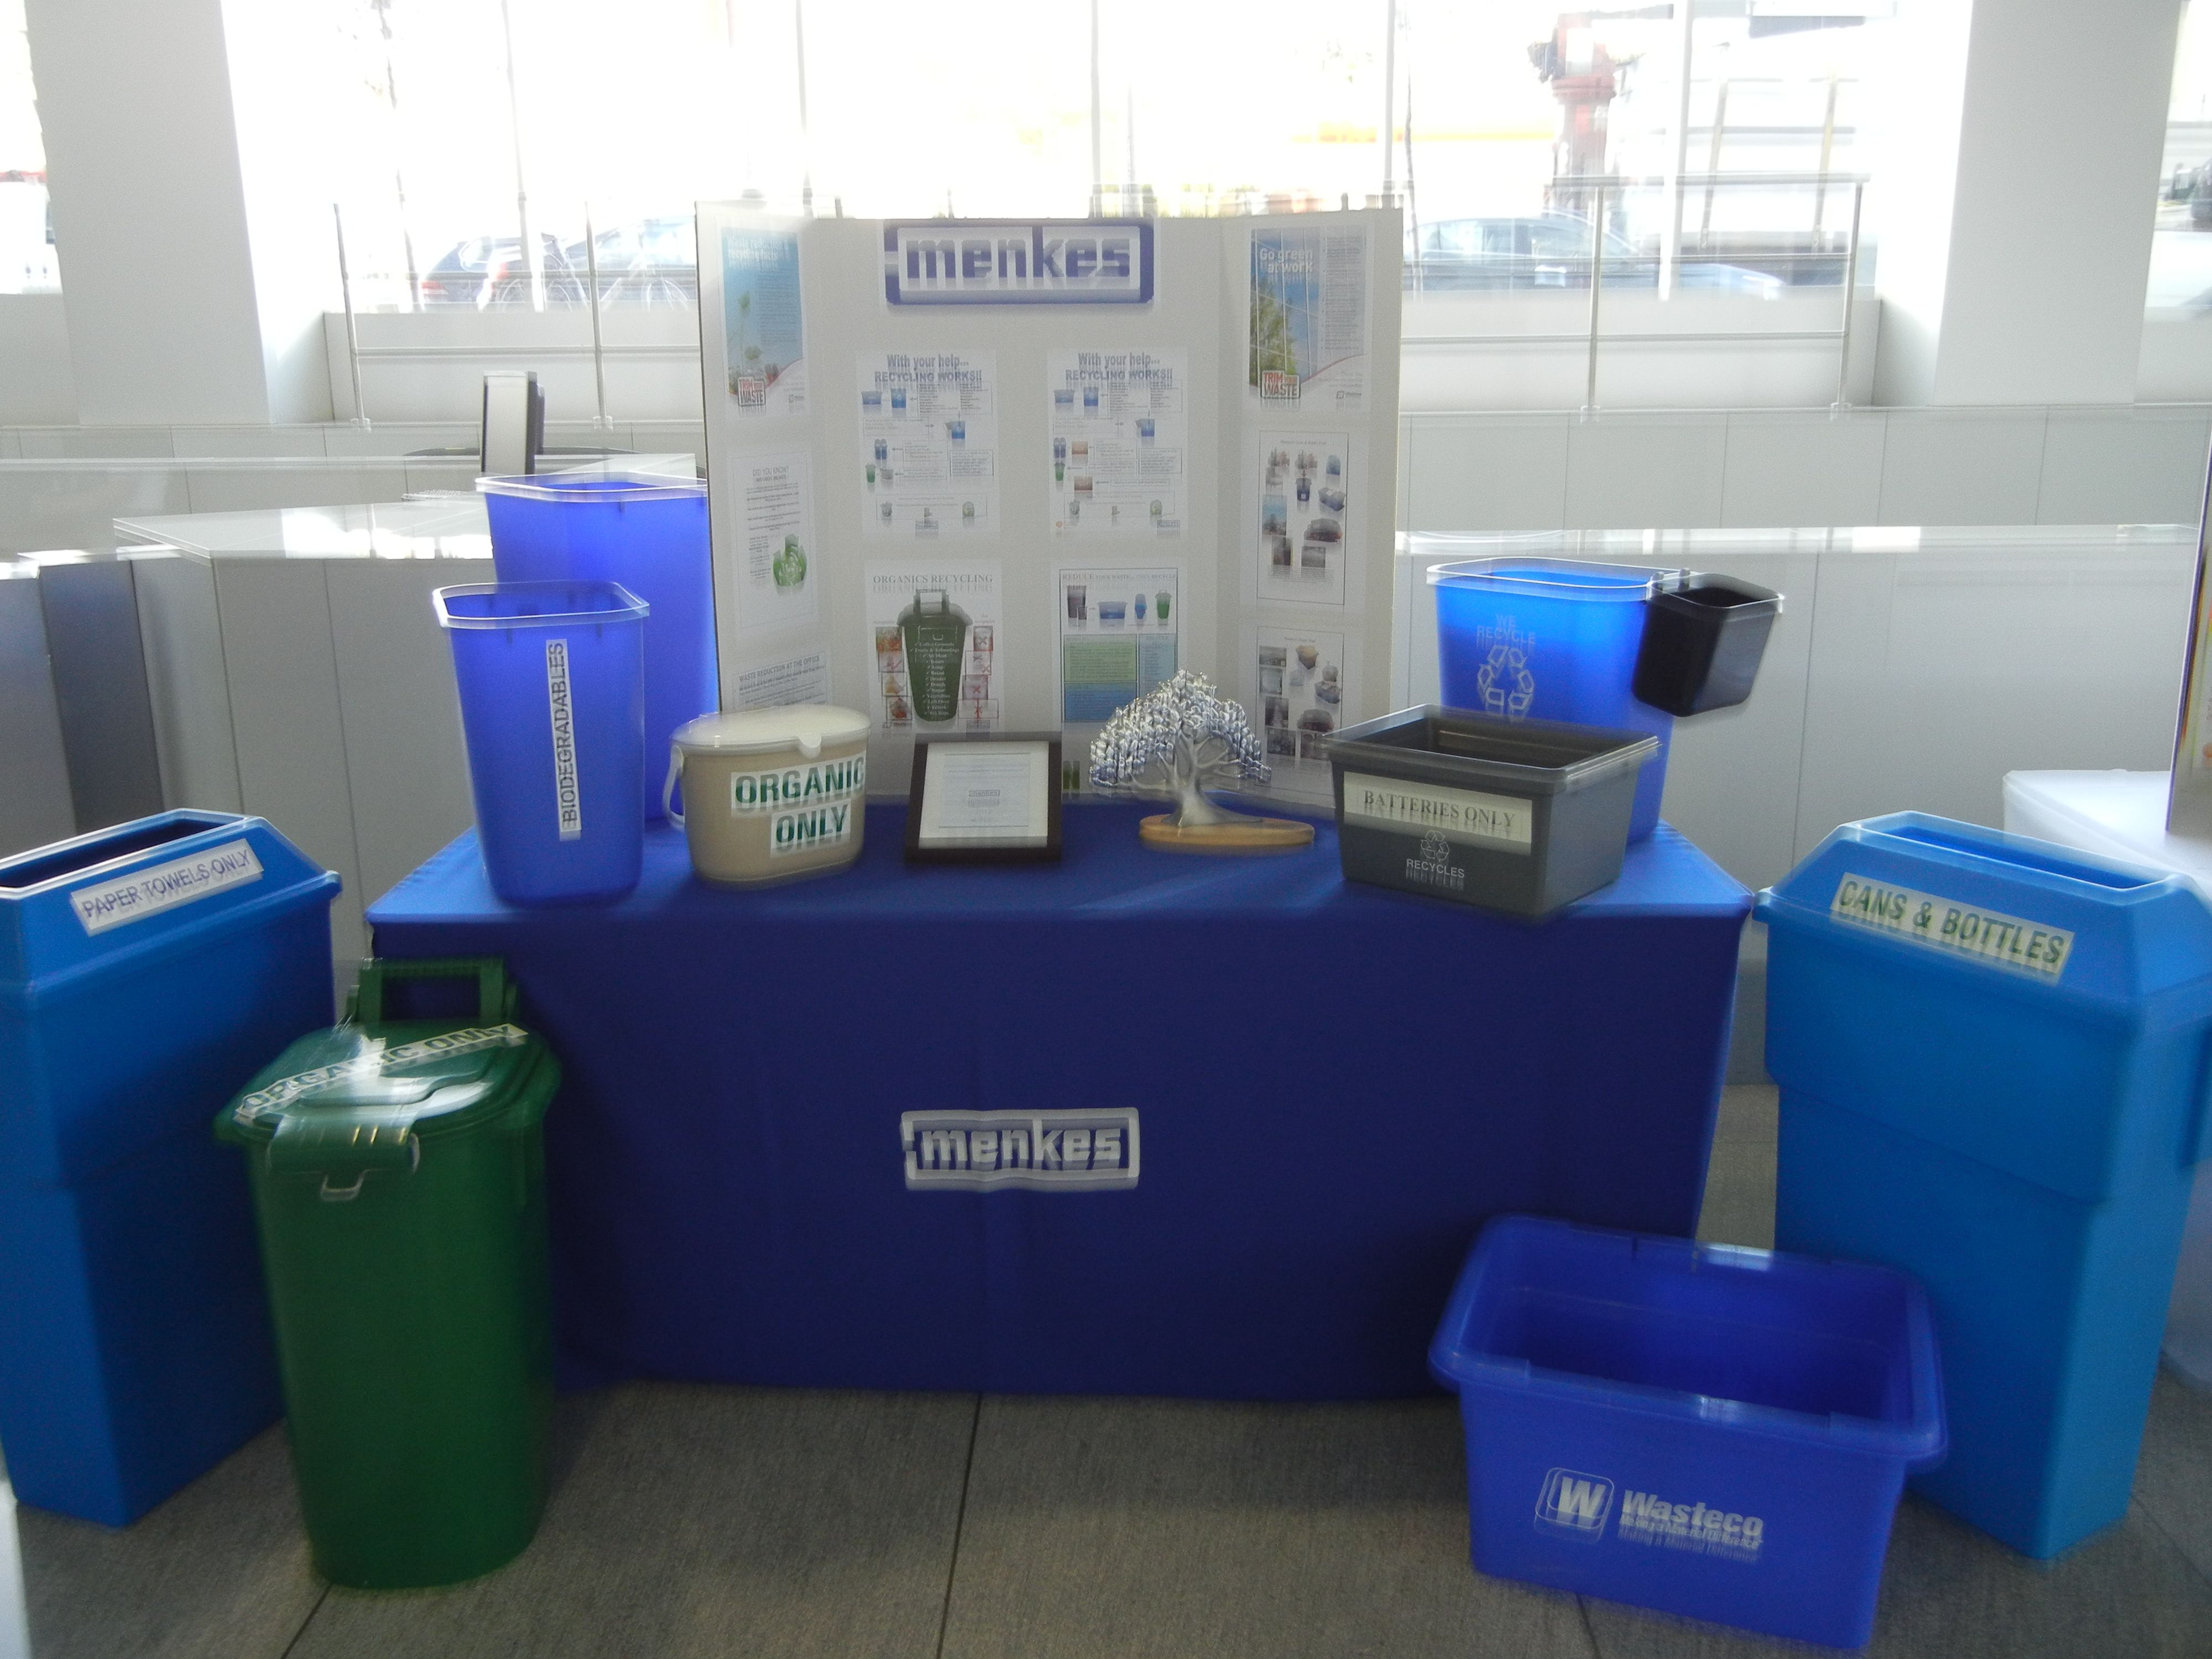 Showing the many ways to recycle at 4711 Yonge Street